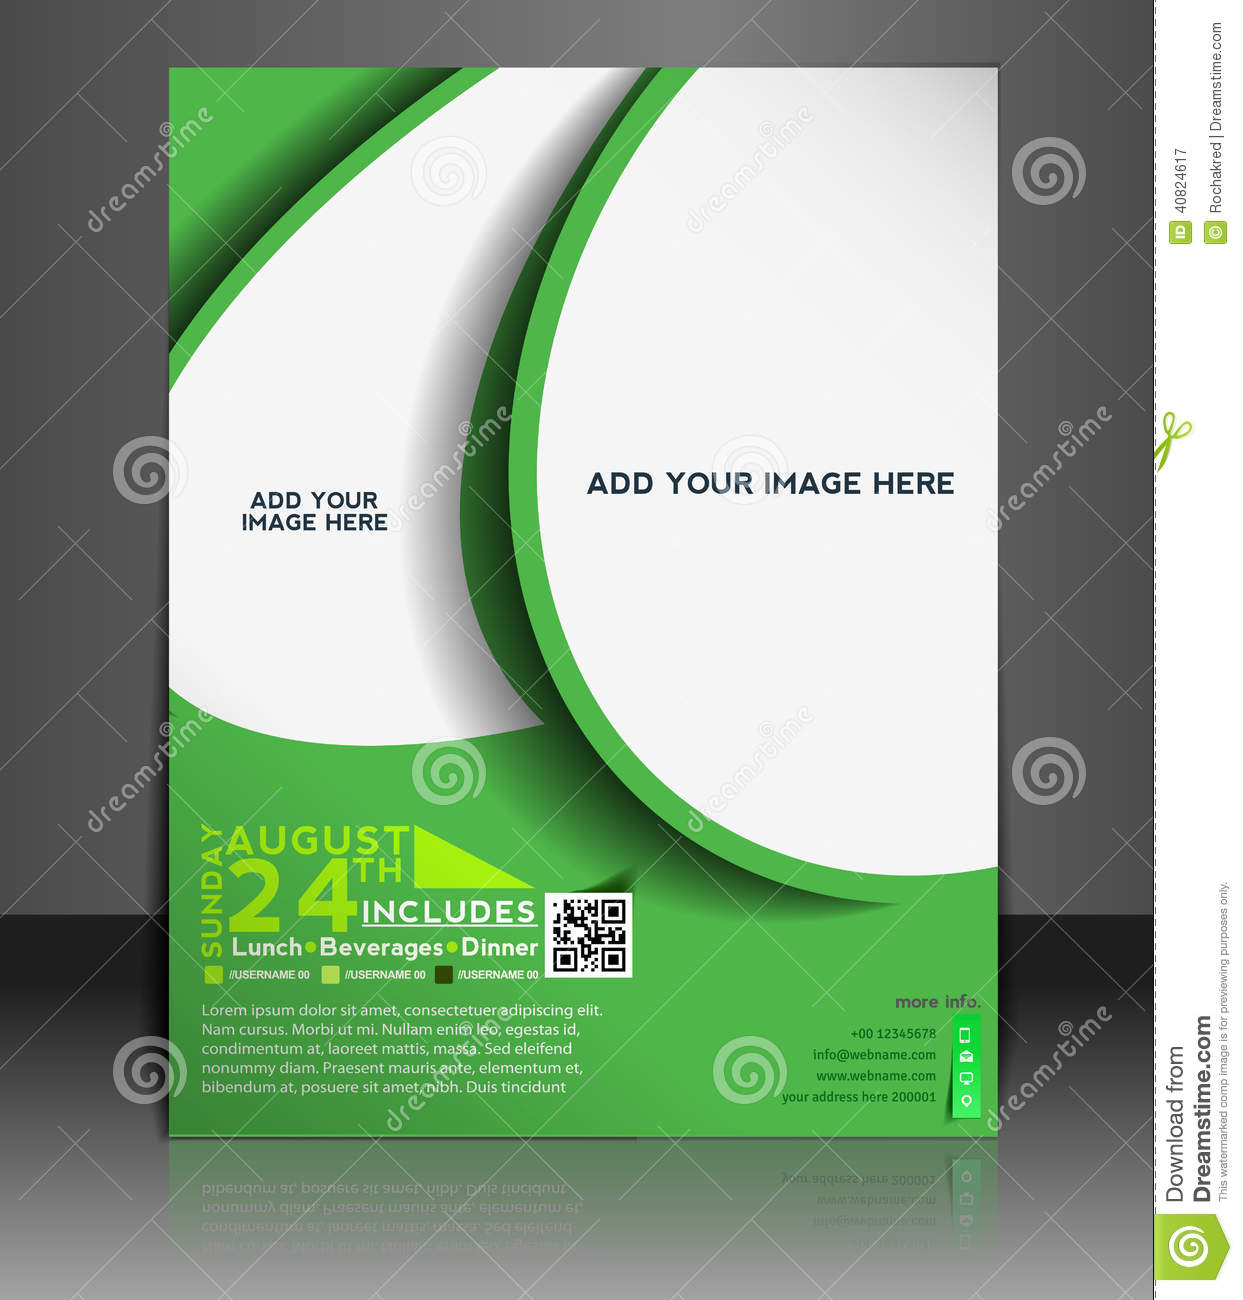 Football Competition Flyer Design Stock Vector - Illustration of ...